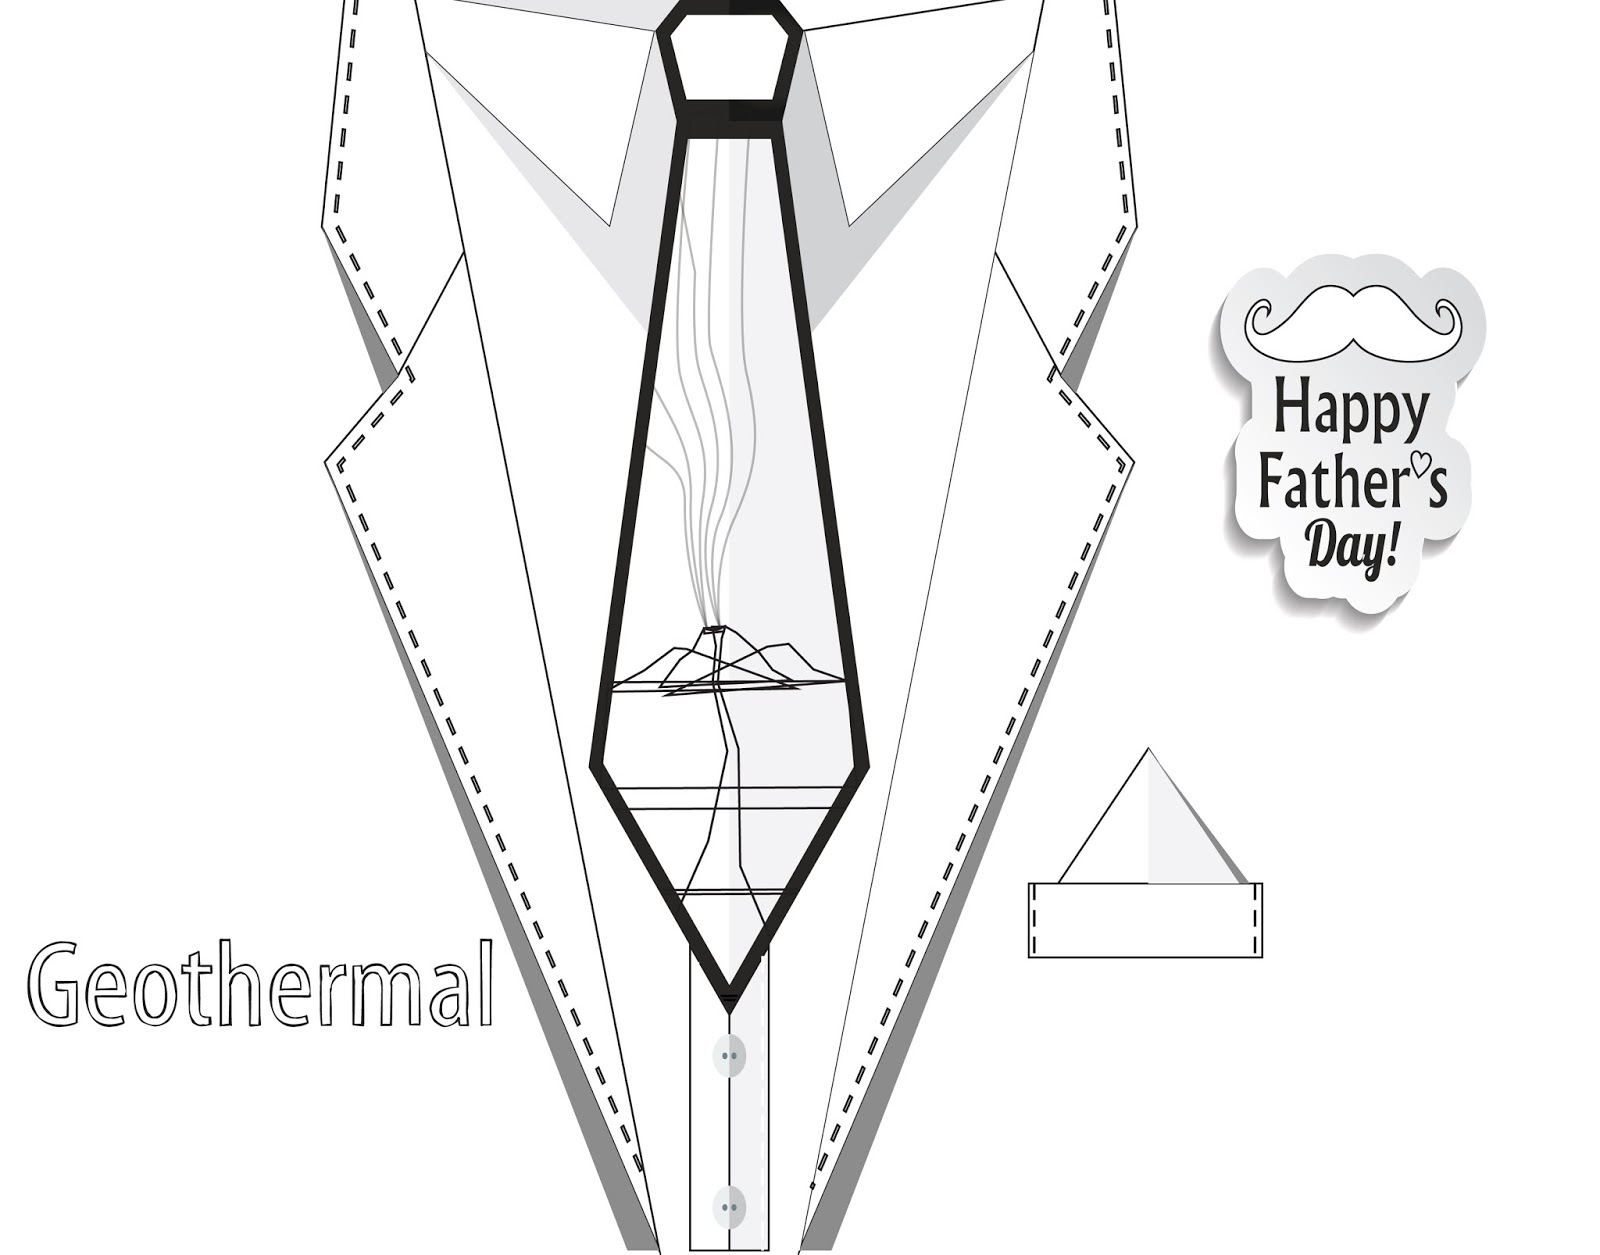 1600x1255 Happy Father's Day! Here's A Geothermal Tie!